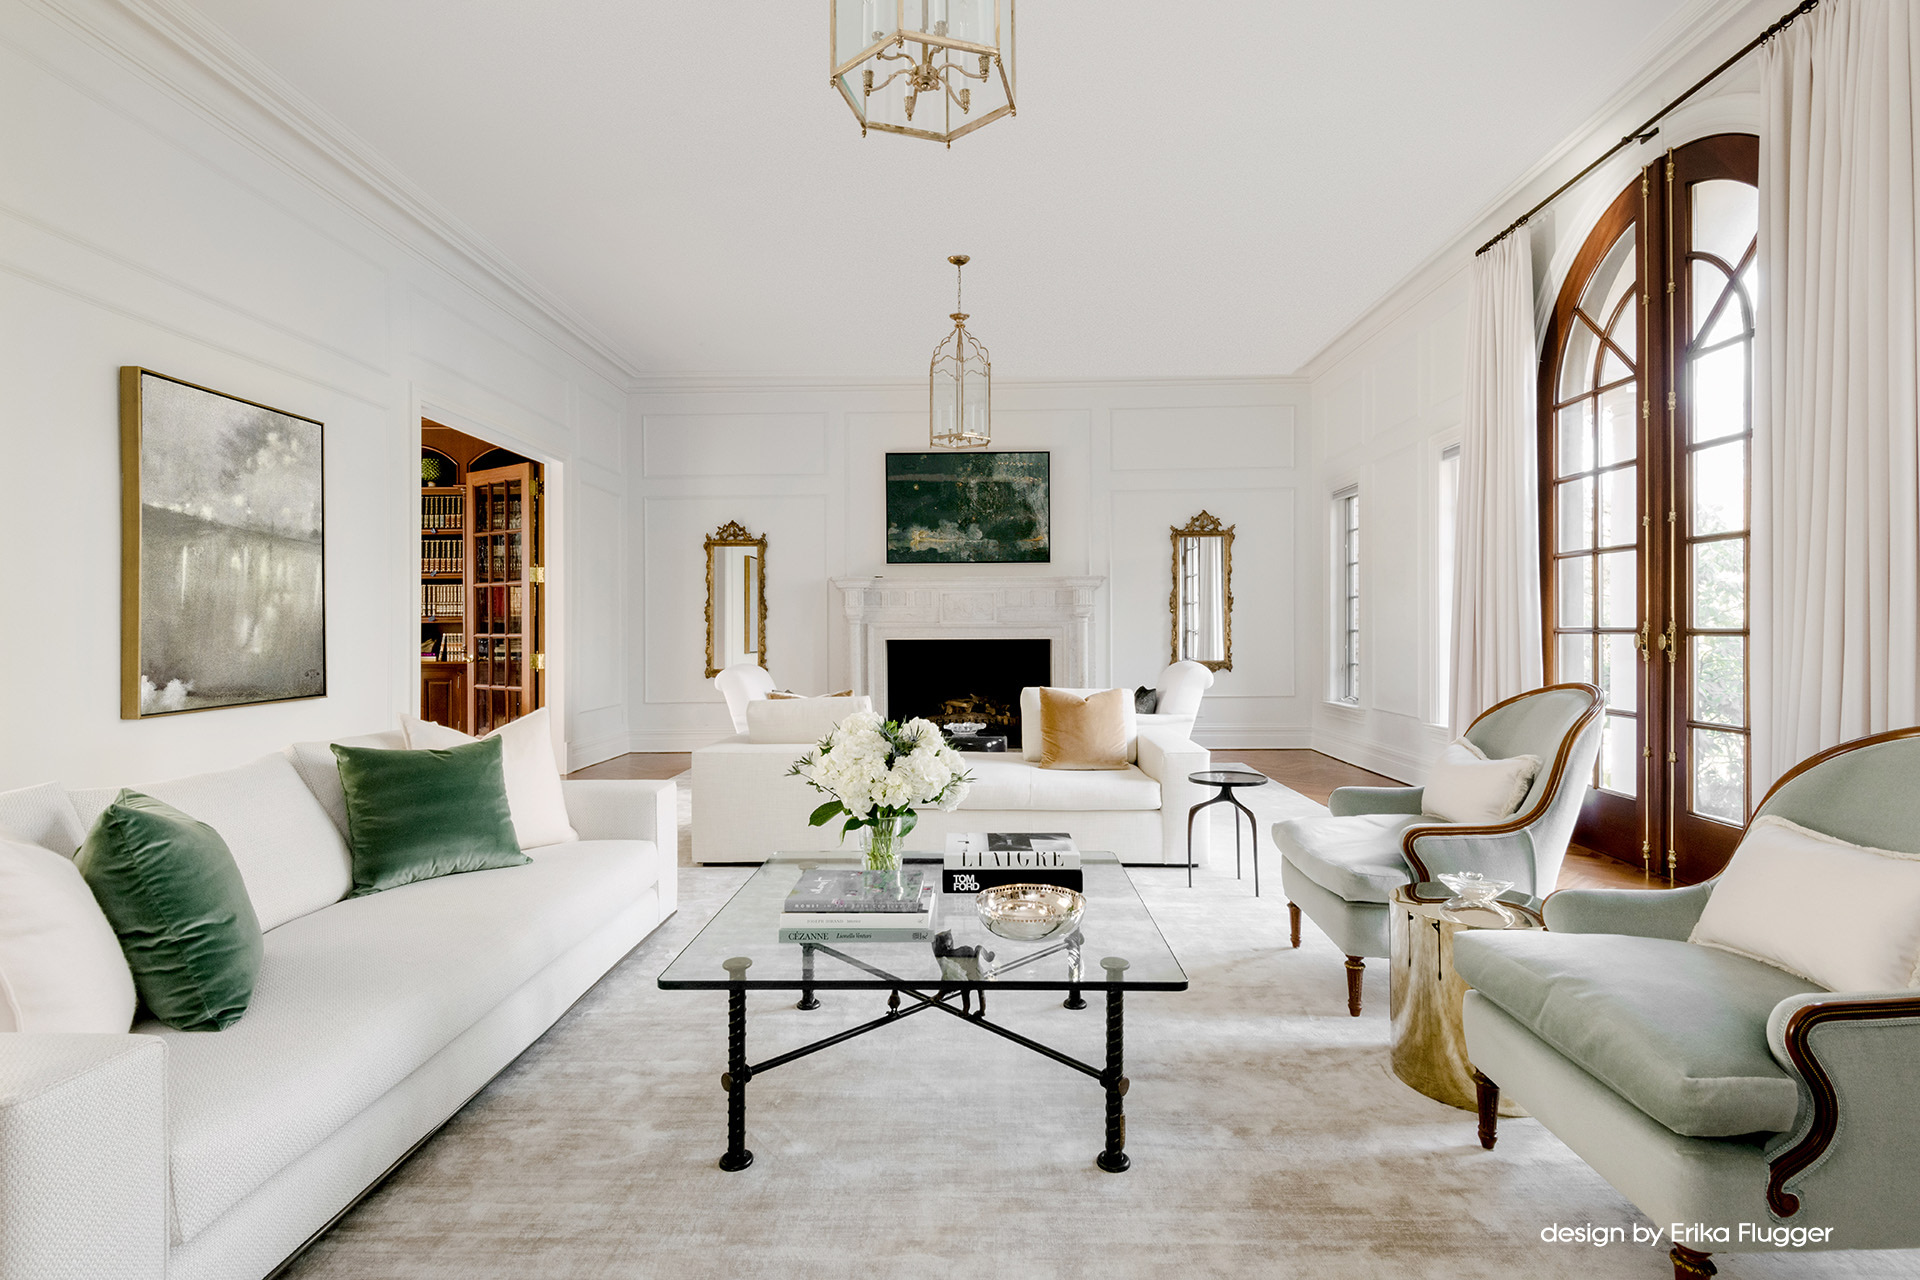 NYC interior design_state home_by Erika Flugger